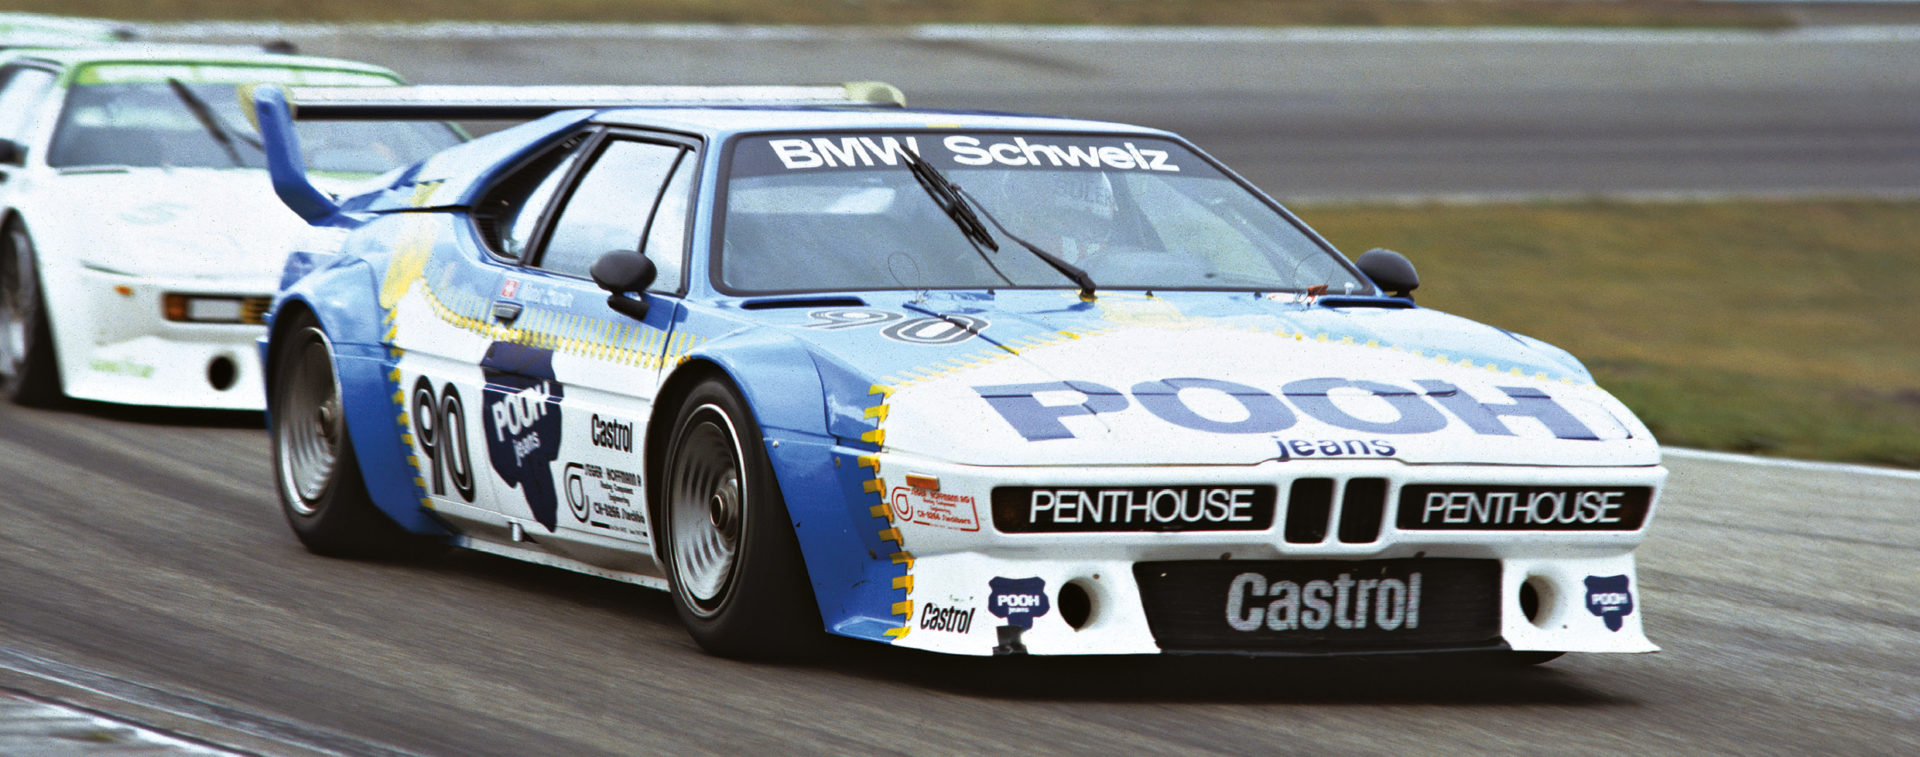 His superb Pooh Jeans Procar livery from 1980